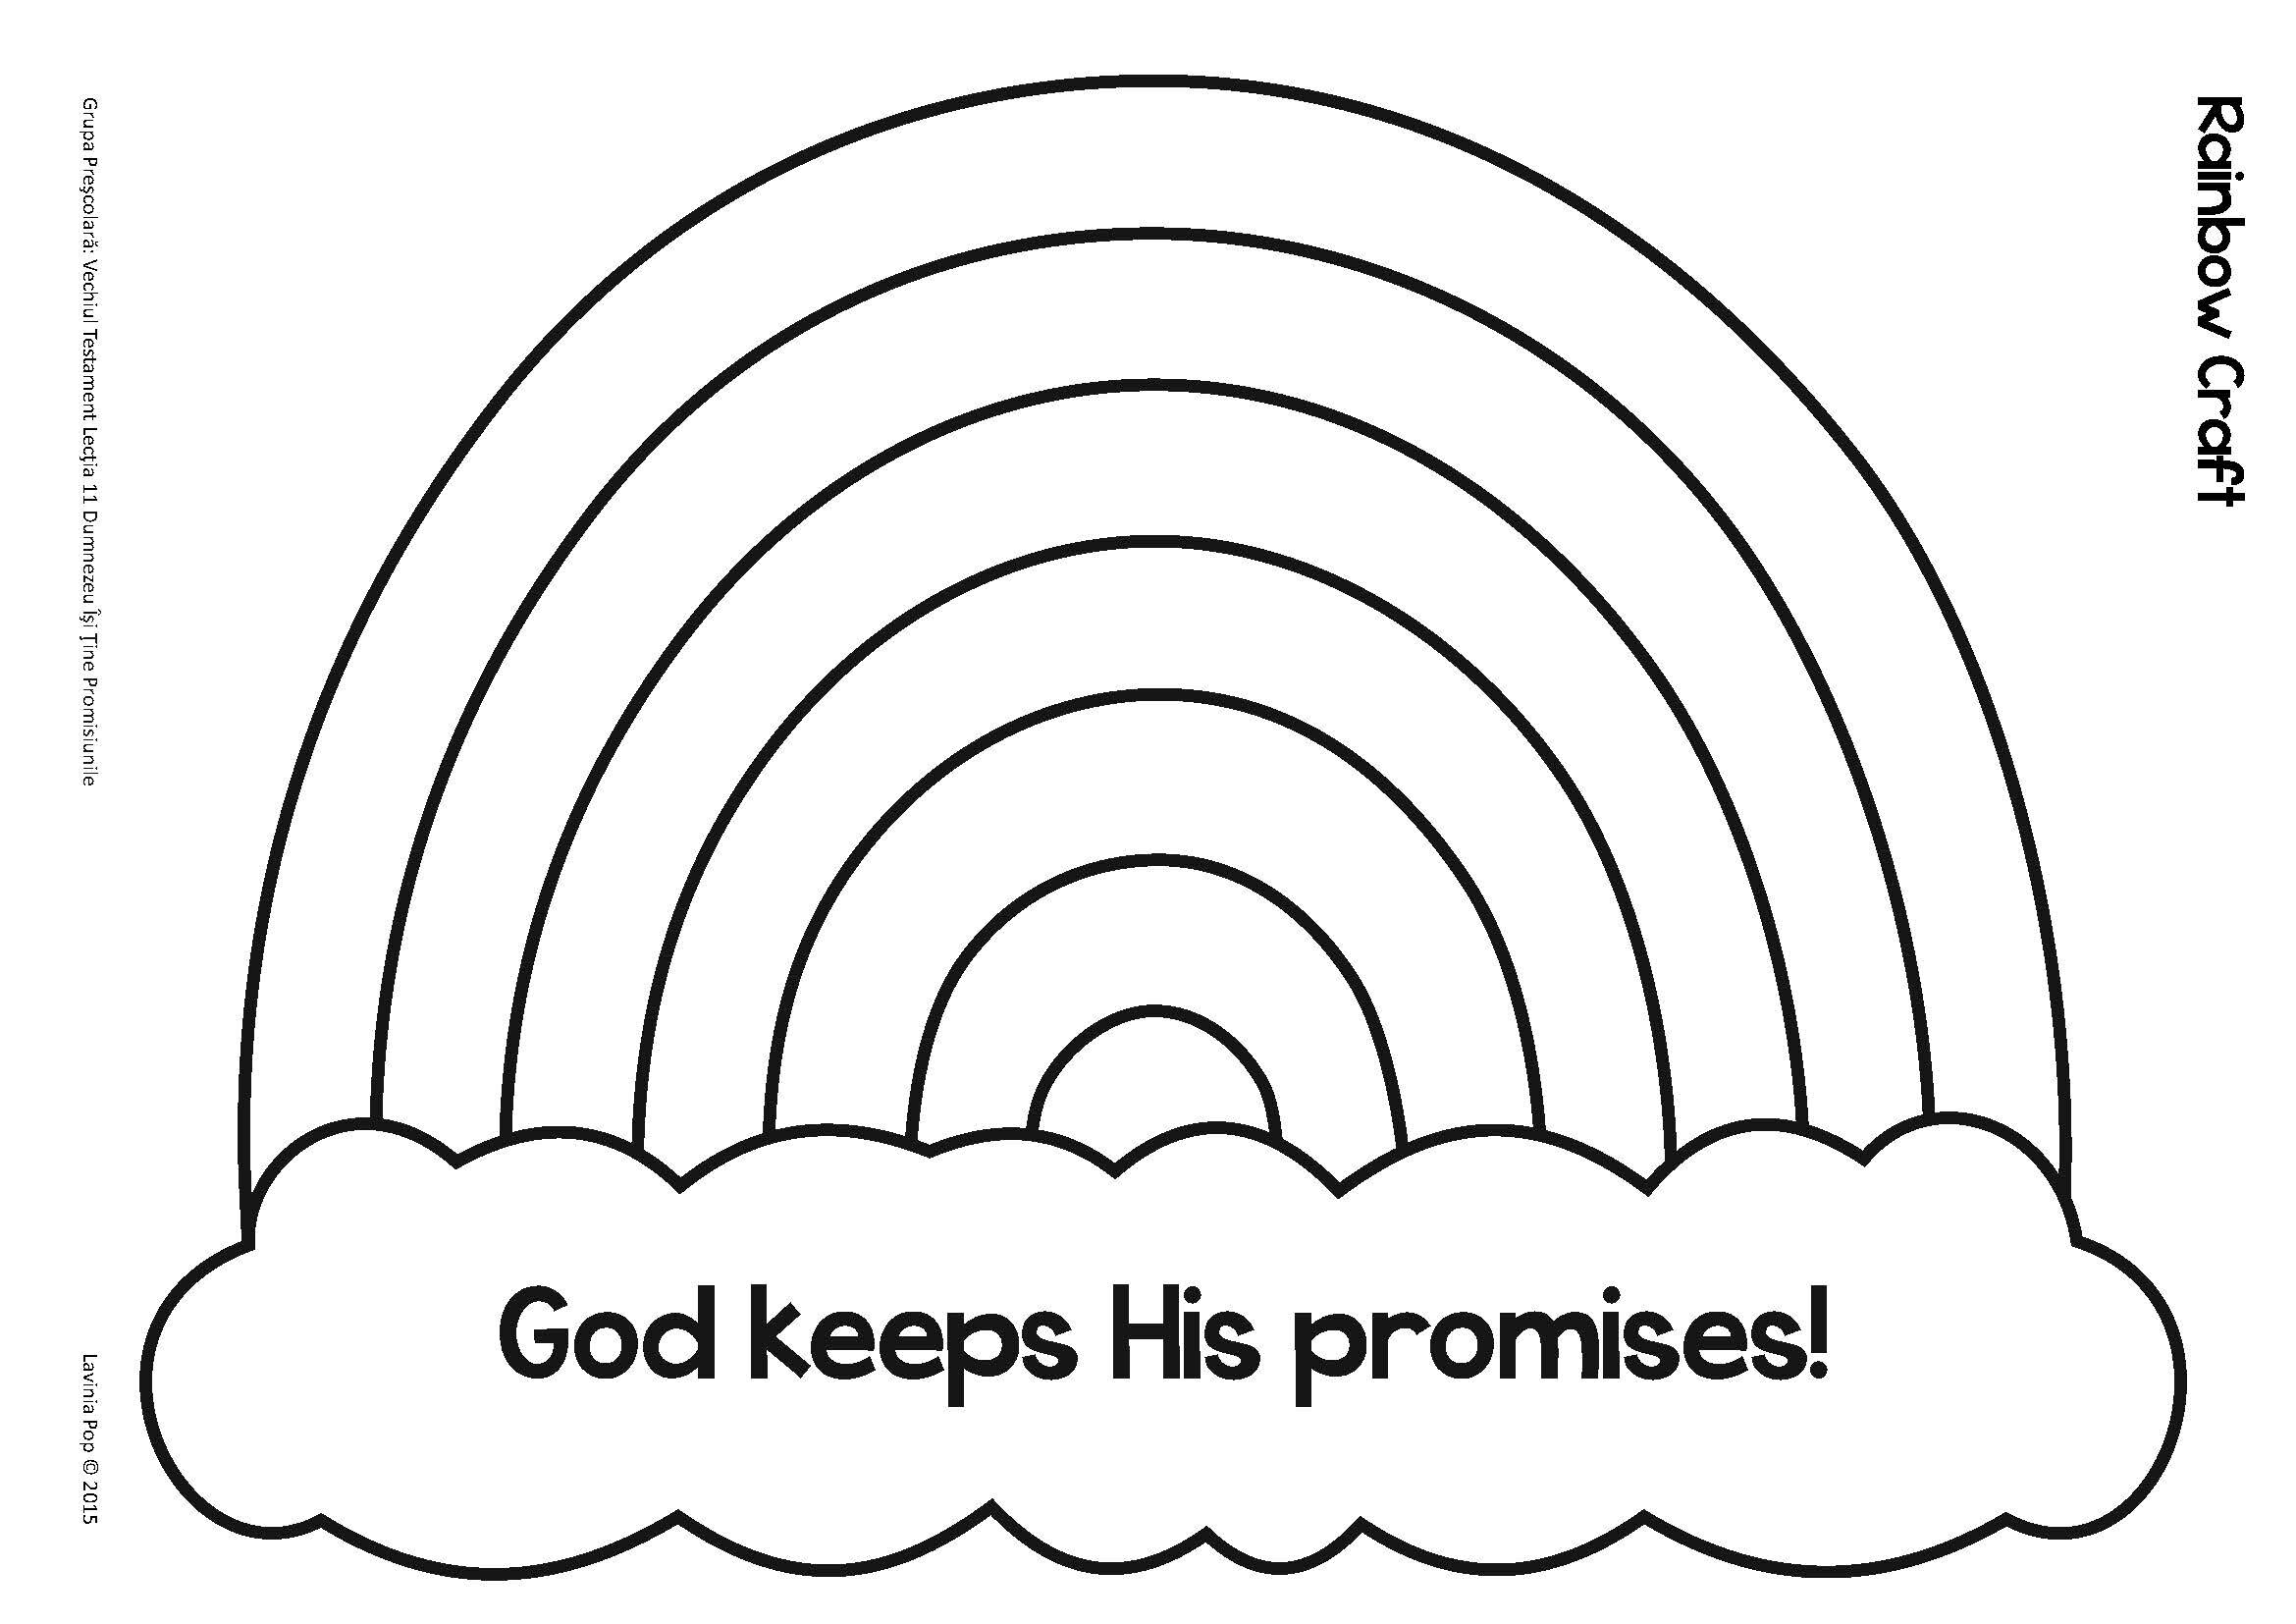 noah the flood evergreenchurch keeps his promises coloring rainbow craft template coloring pages God Keeps His Promises Coloring Page